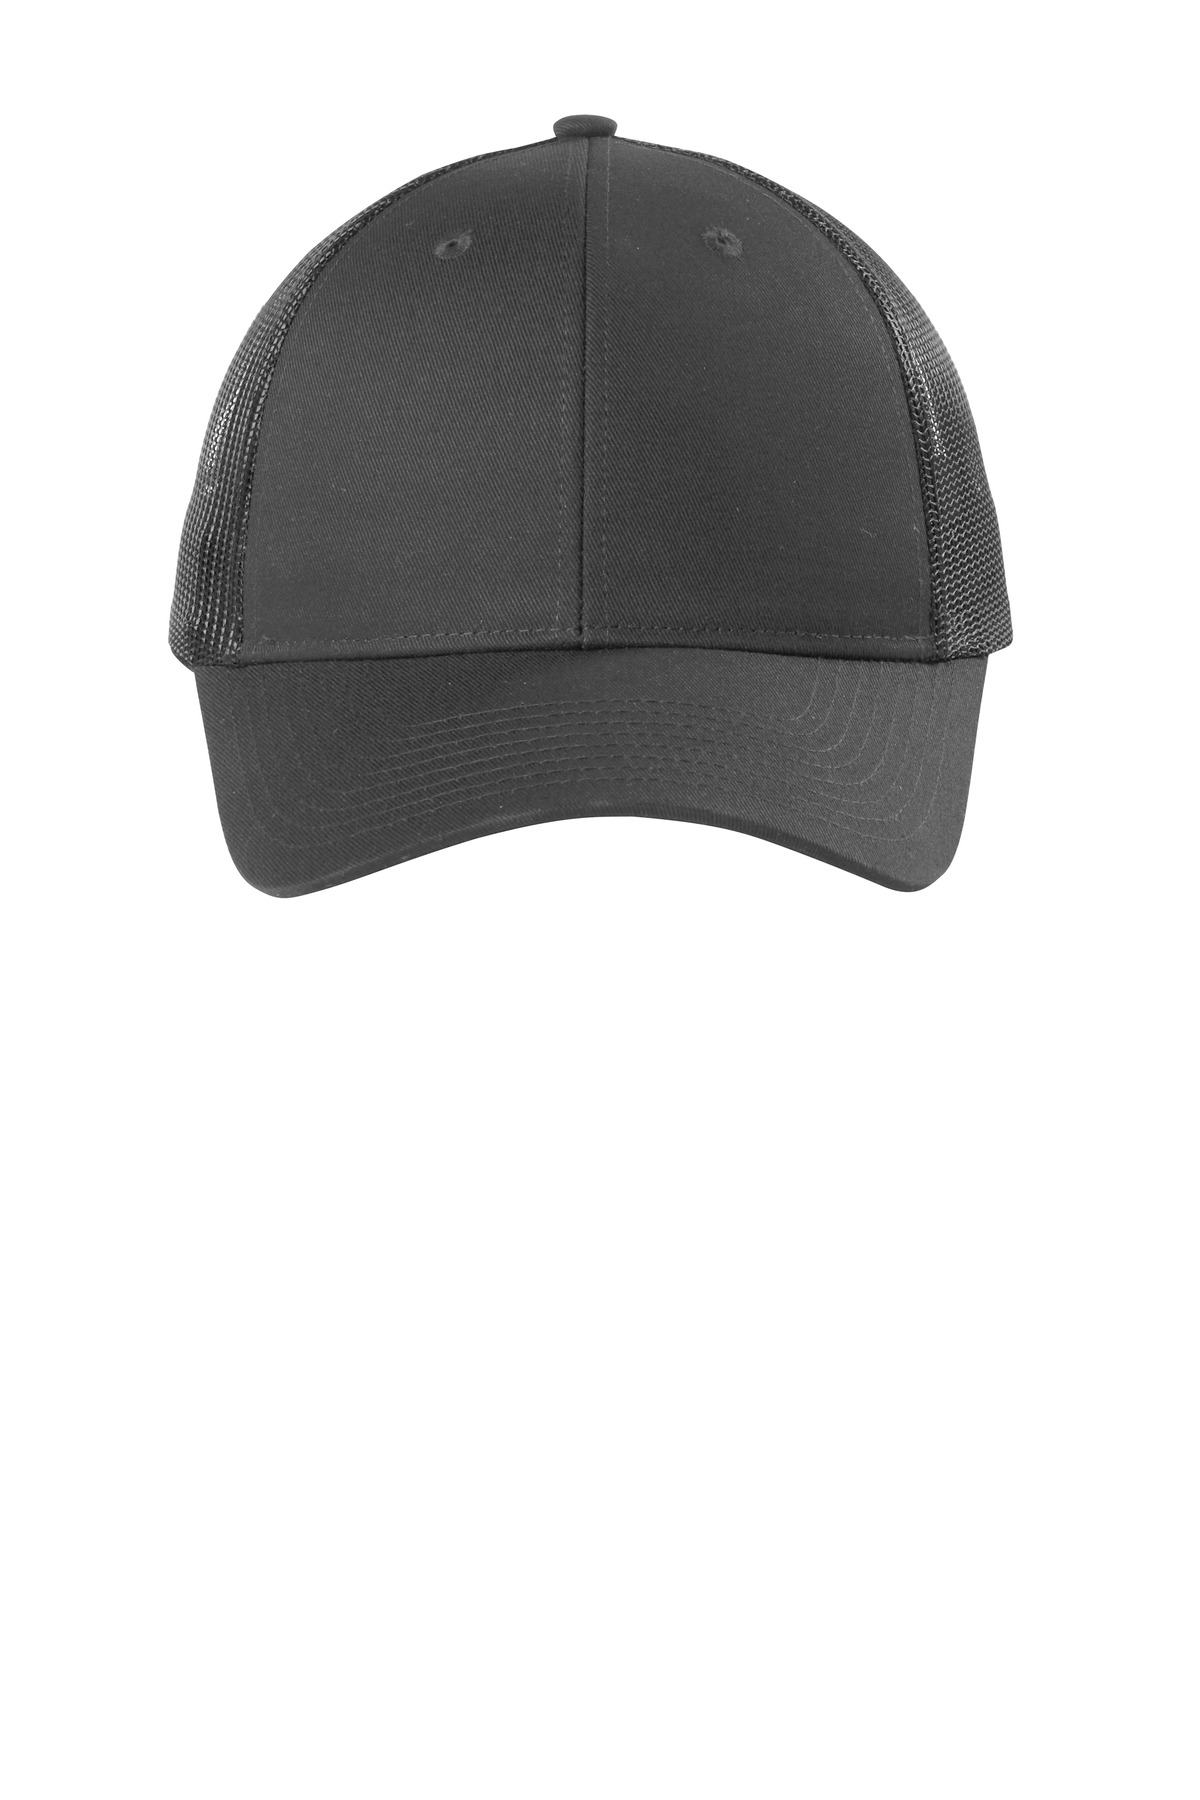 Port Authority  ®  Low-Profile Snapback Trucker Cap. C112LP - Grey Steel